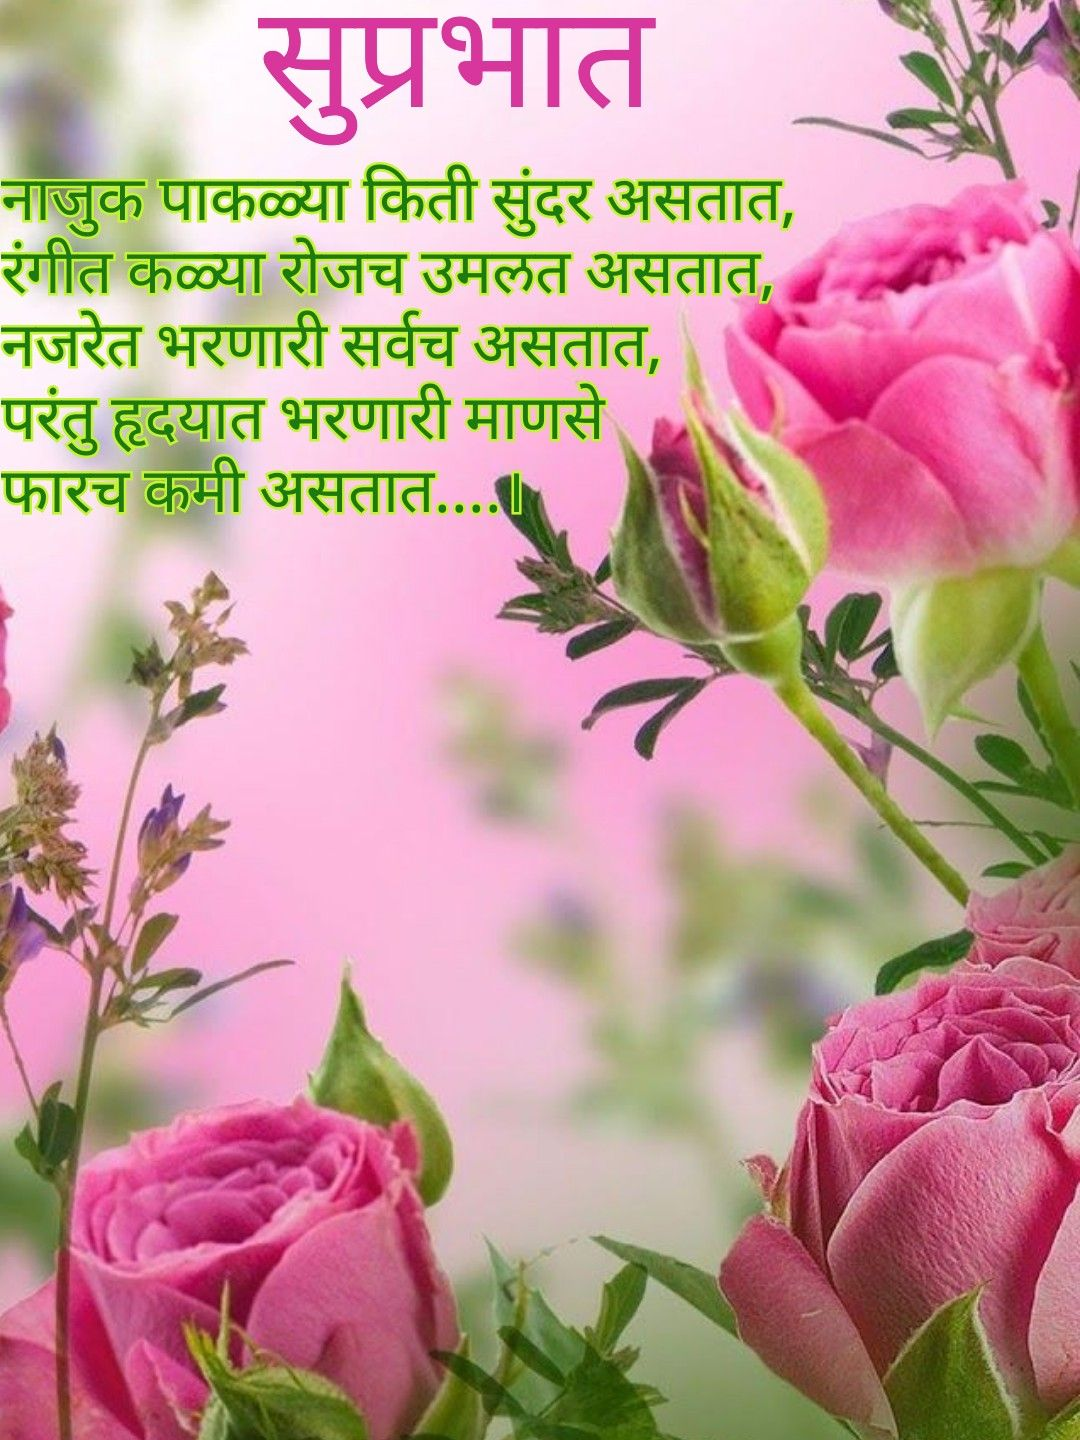 Pin by Vinayak Shetty on Marathi poem, quotes and songs